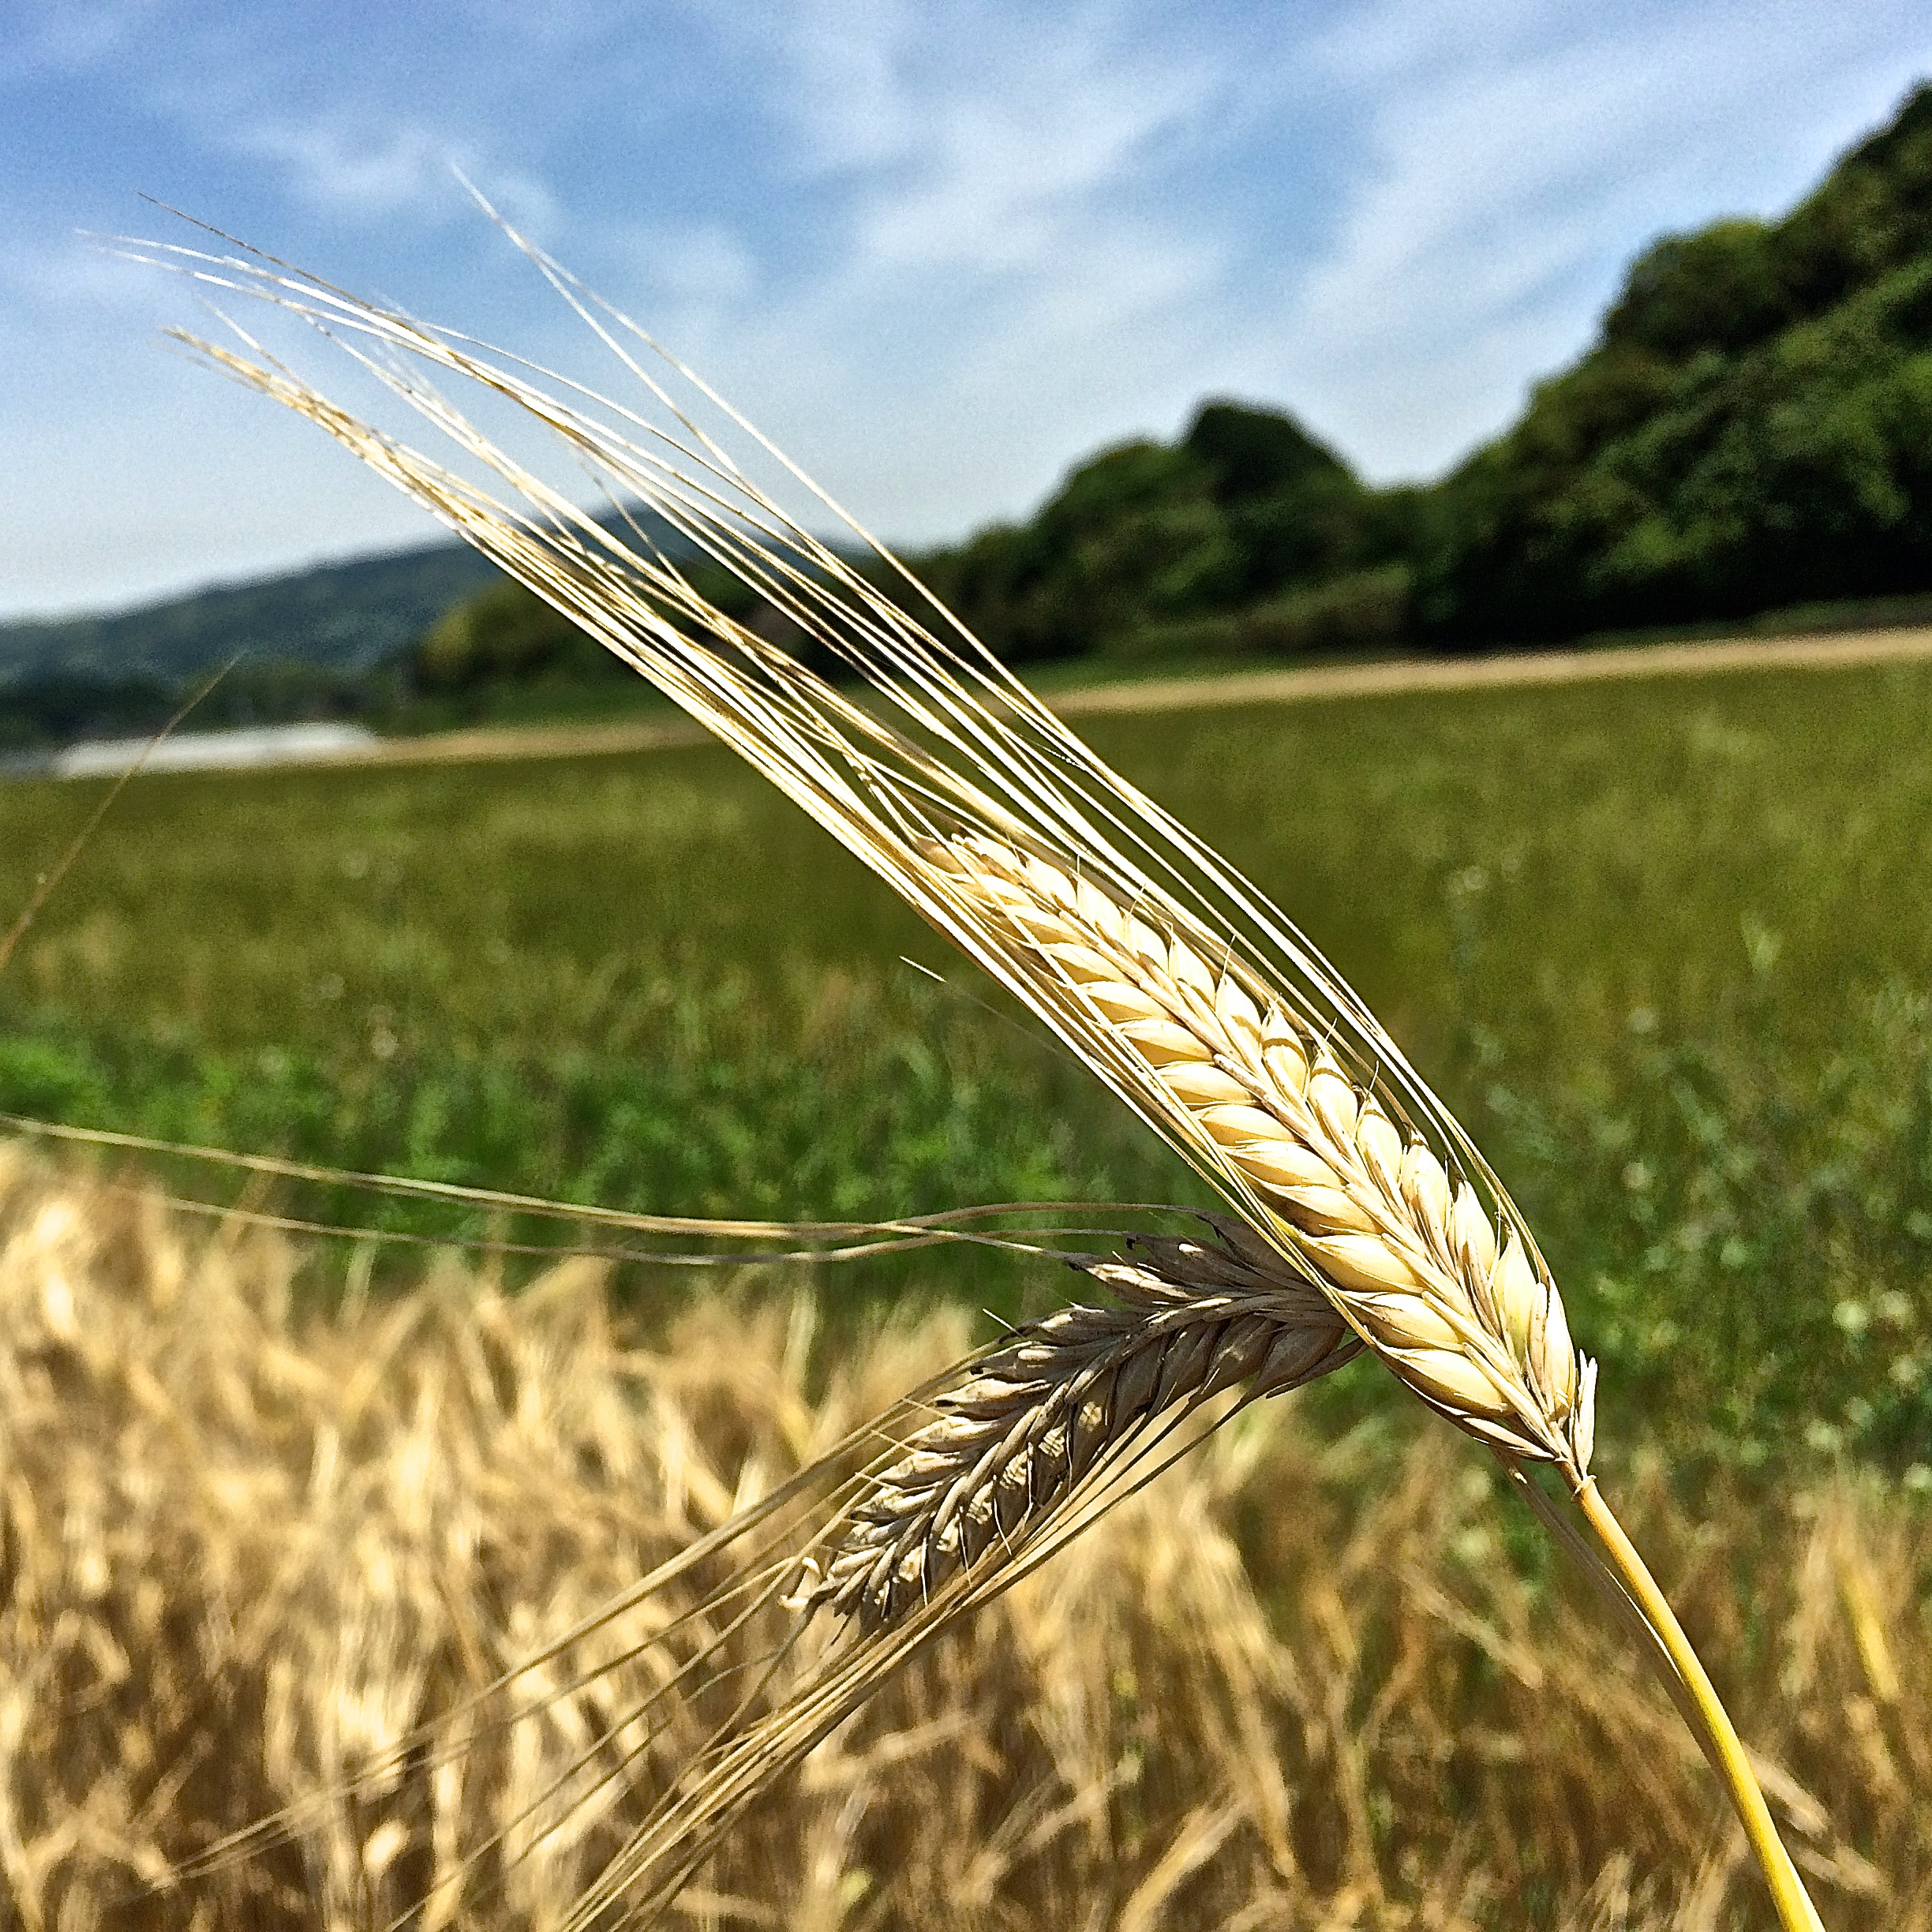 Two-rowed barley at the time of harvest in Saga, Japan.